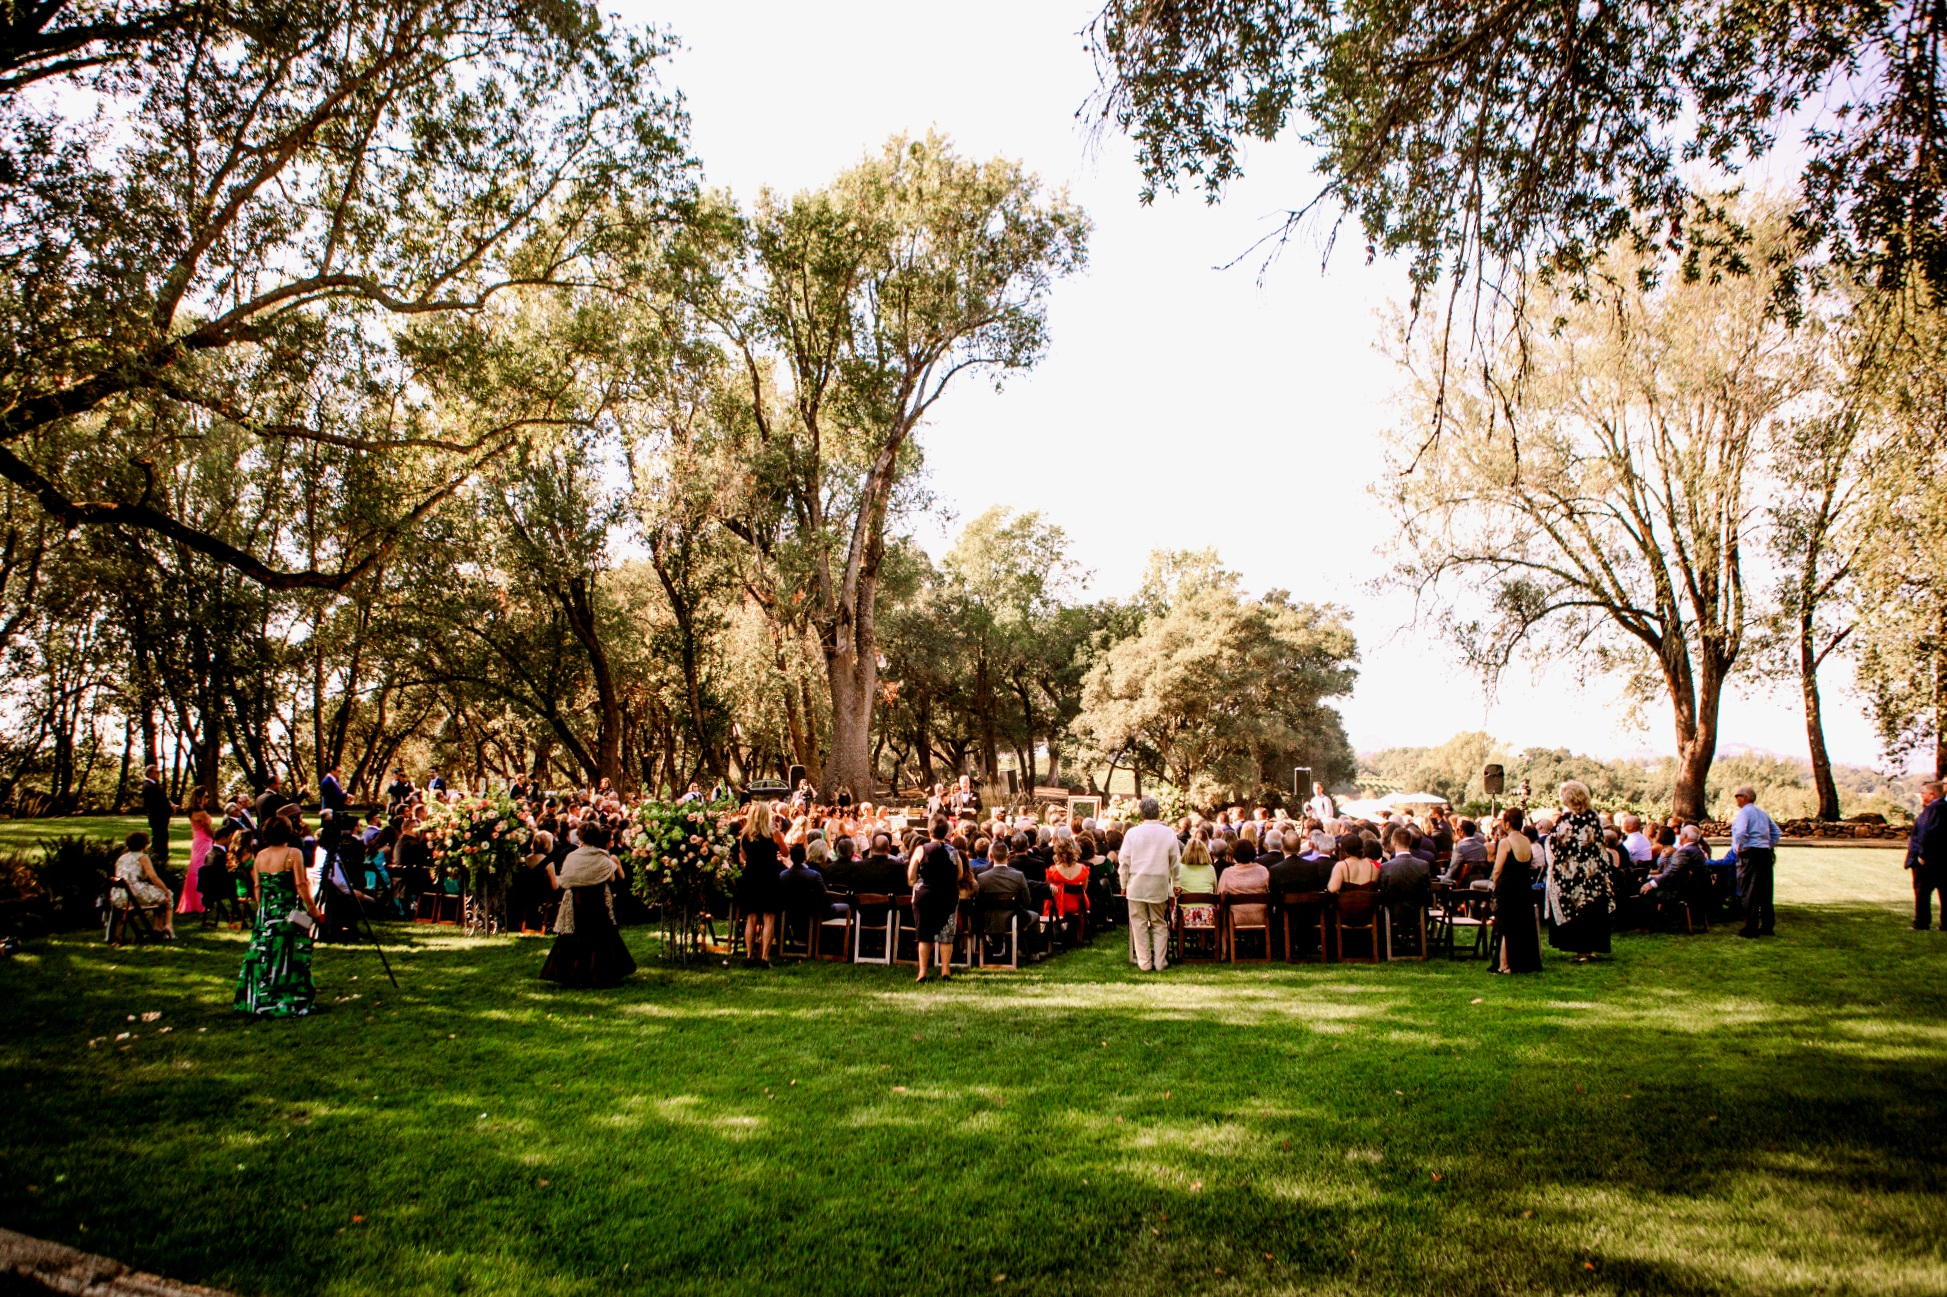 san diego wedding   photographer | outdoors shot of arrangement of people seated on chairs   looking away from camera